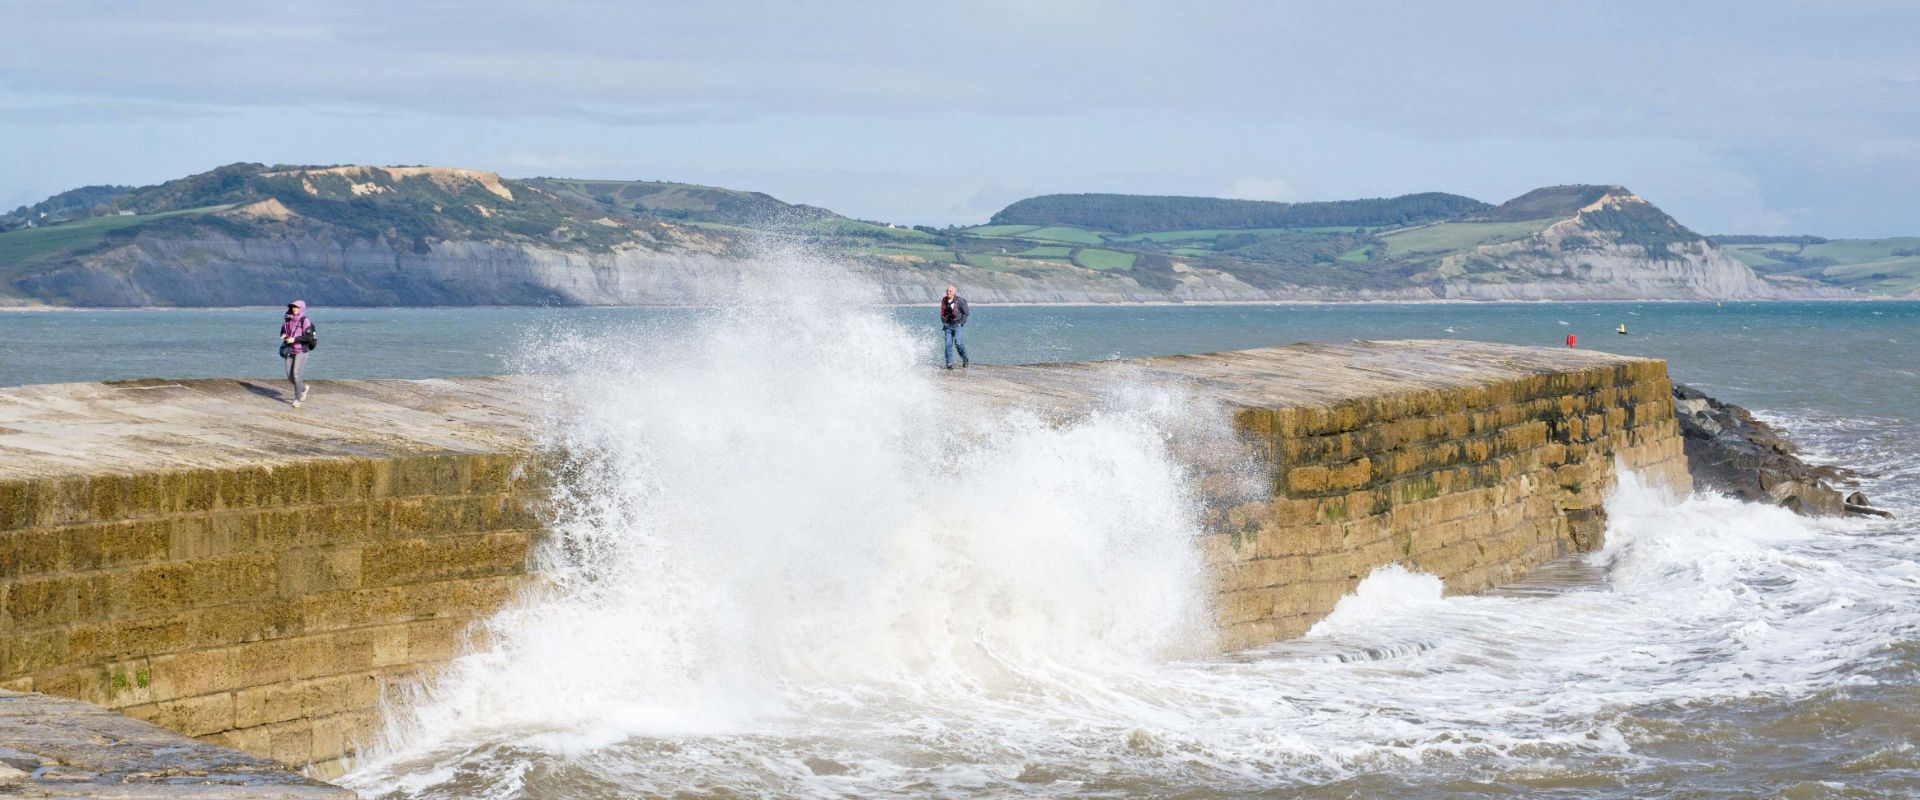 The Cobb at Lyme Regis being hit by winter storms